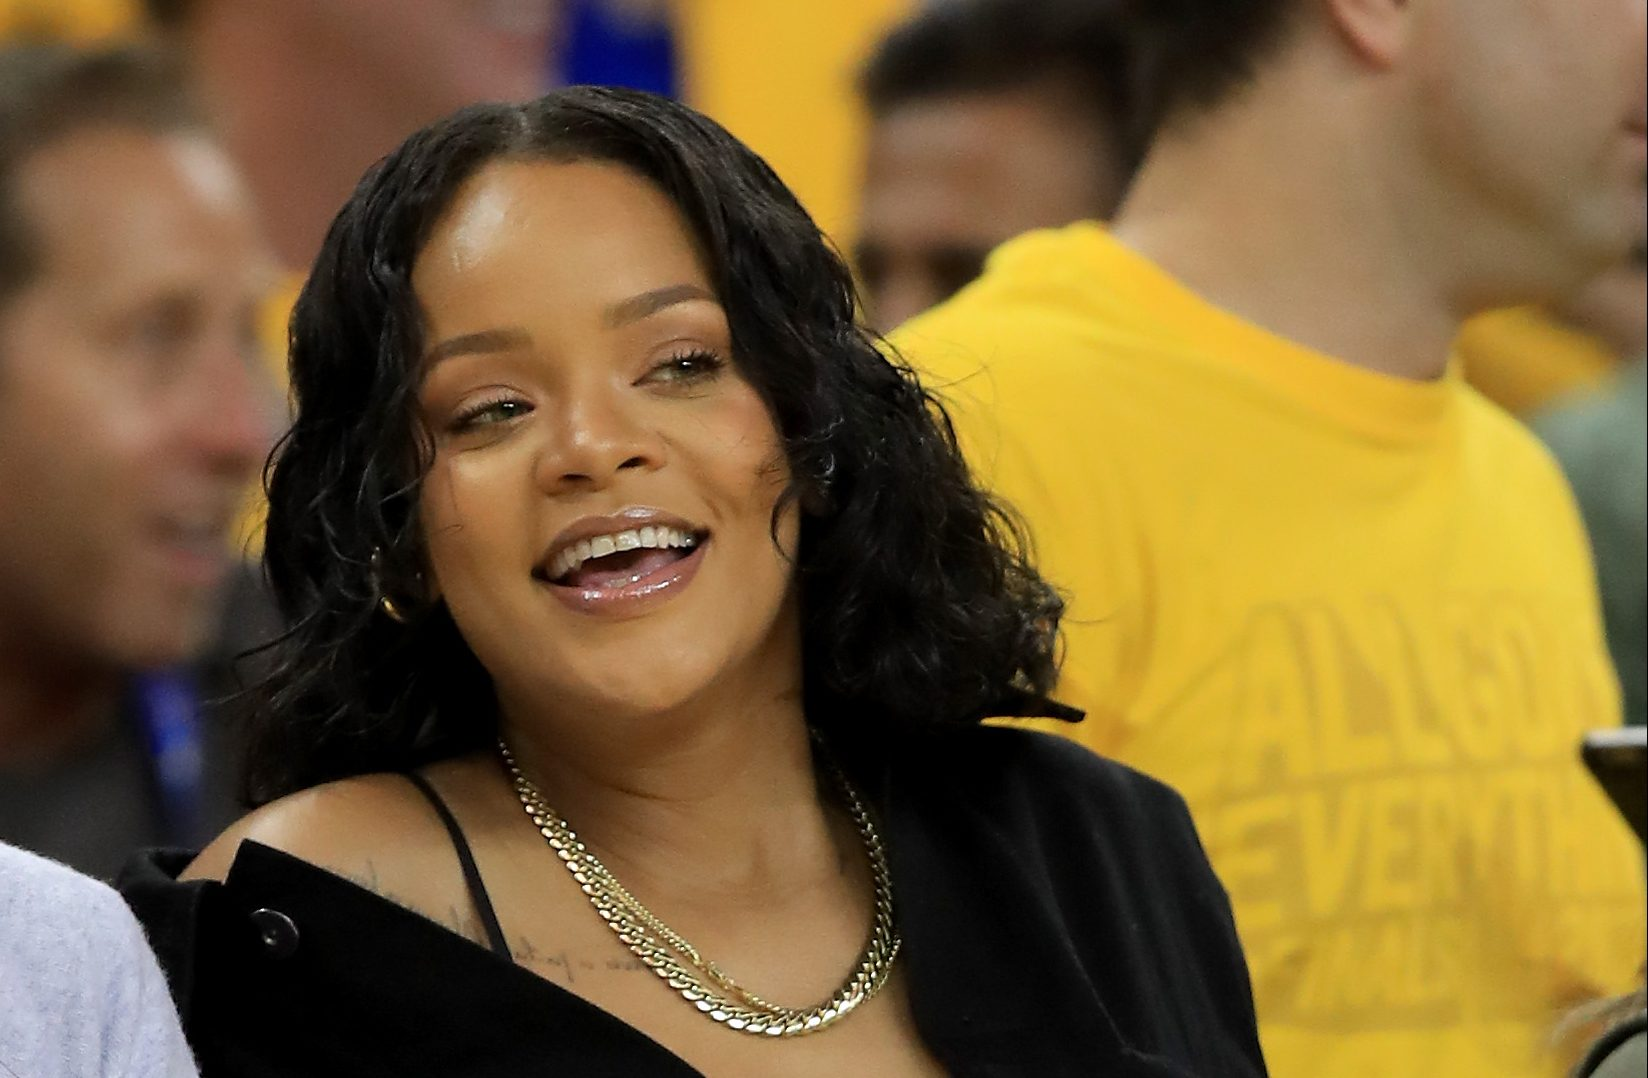 SPOTTED: Rihanna Bows Down To King James & Heckles Golden State [Video] | Z 107.9